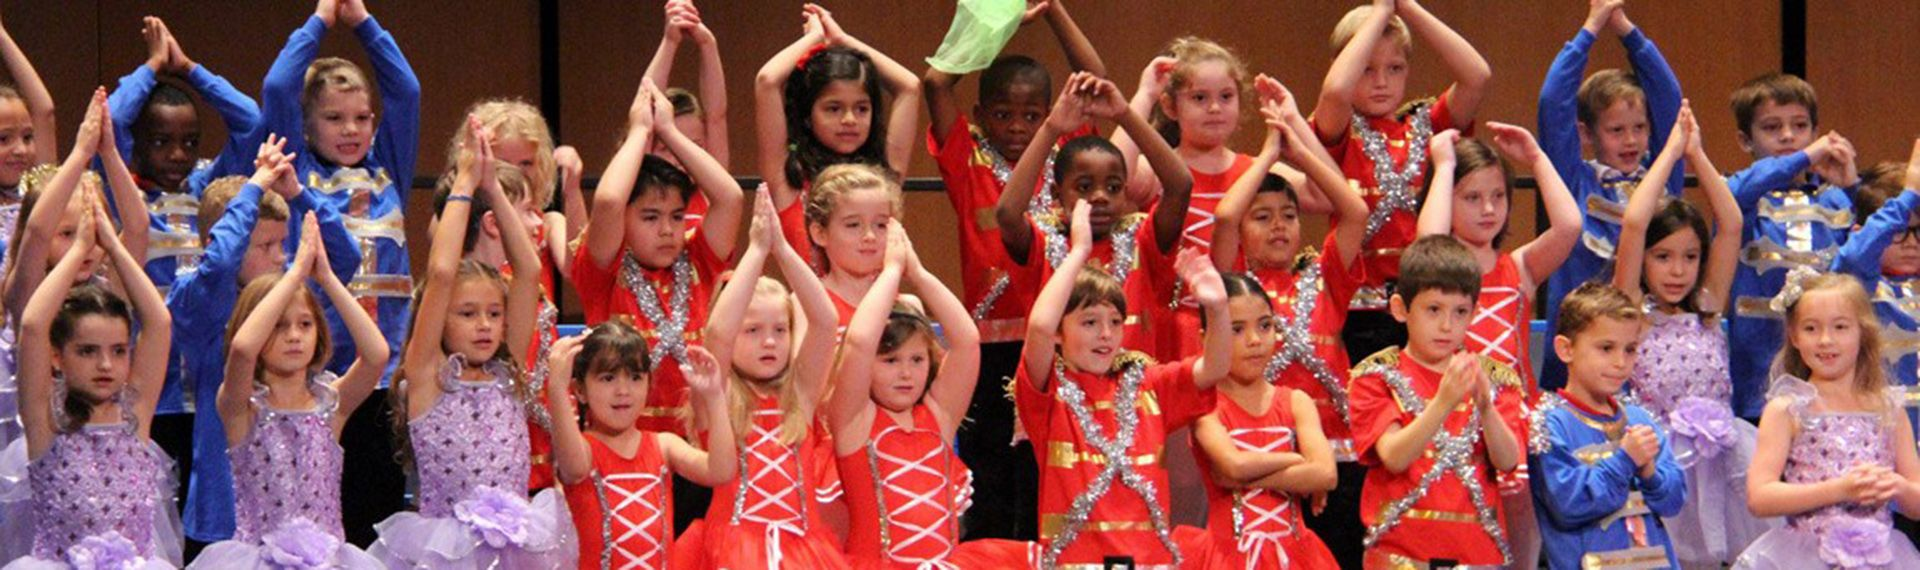 Lower School students performance at choir concert.